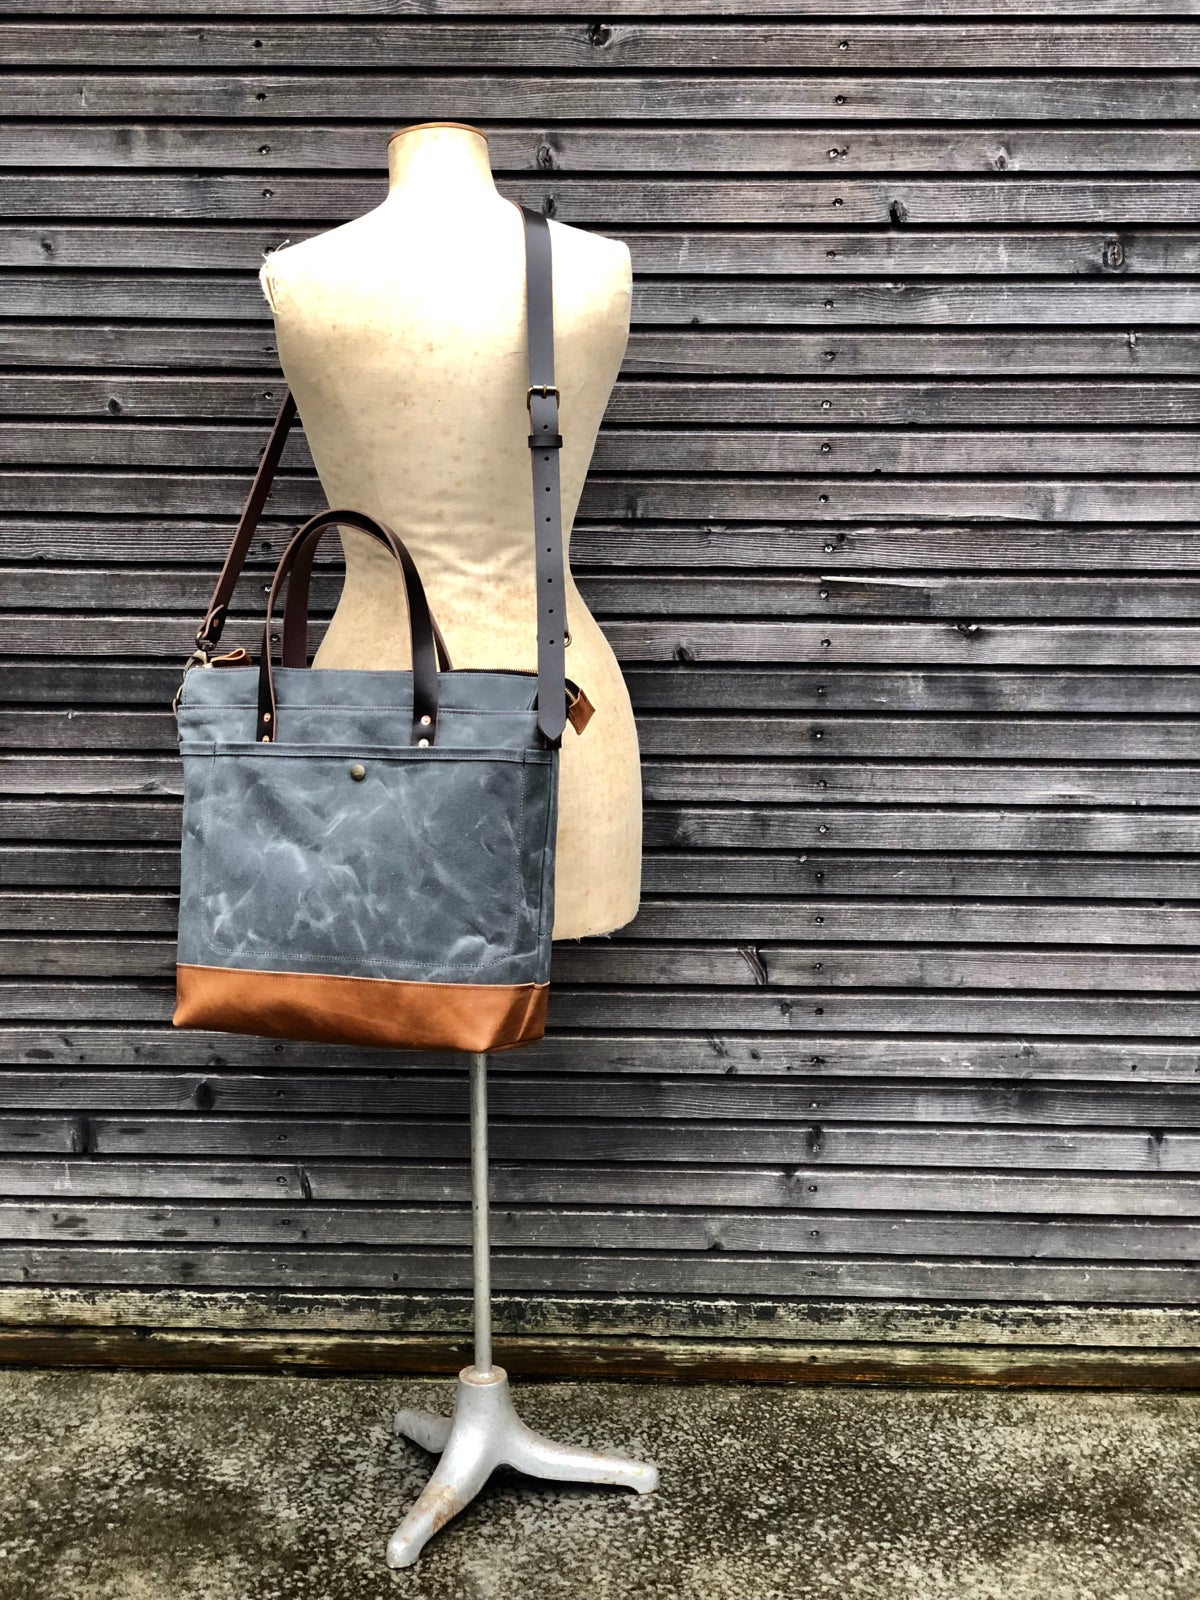 Image of Waxed canvas tote bag - carry all - diaper bag with padded laptop compartment COLLECTION UNISEX